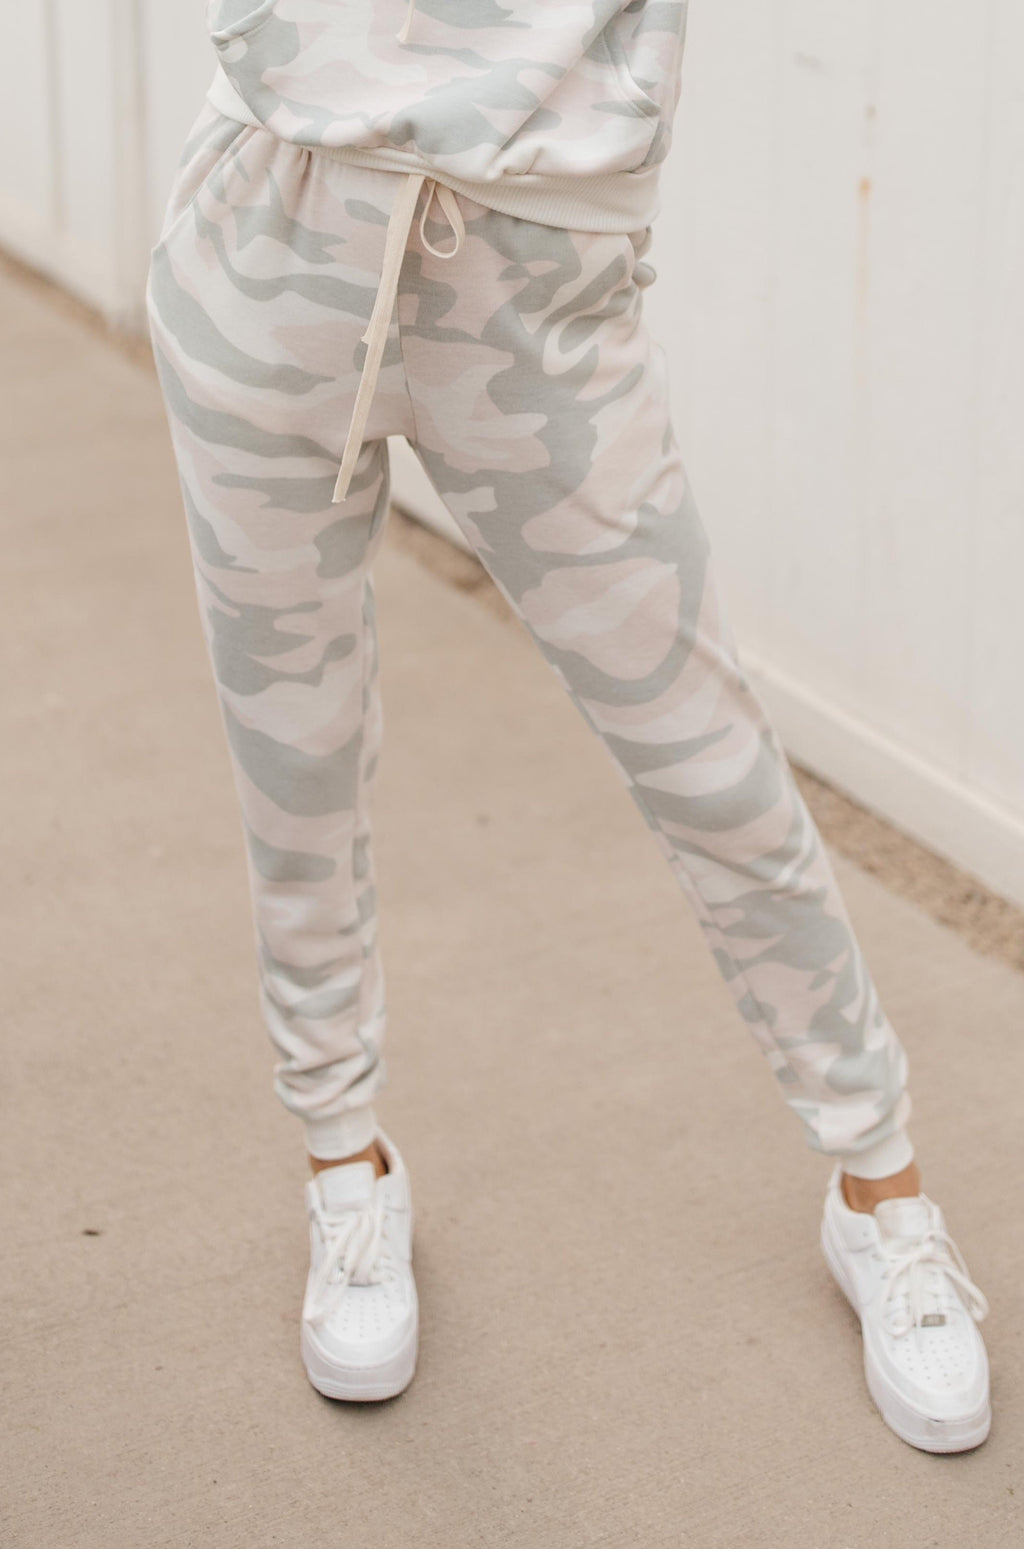 Pastel Meets Camo Joggers-1XL, 2-4-2021, 2XL, 3XL, Bottoms, FeaturedApr2021w2, Group A, Group B, Group C, Large, Made in the USA, Medium, Small, XL, XS-Womens Artisan USA American Made Clothing Accessories